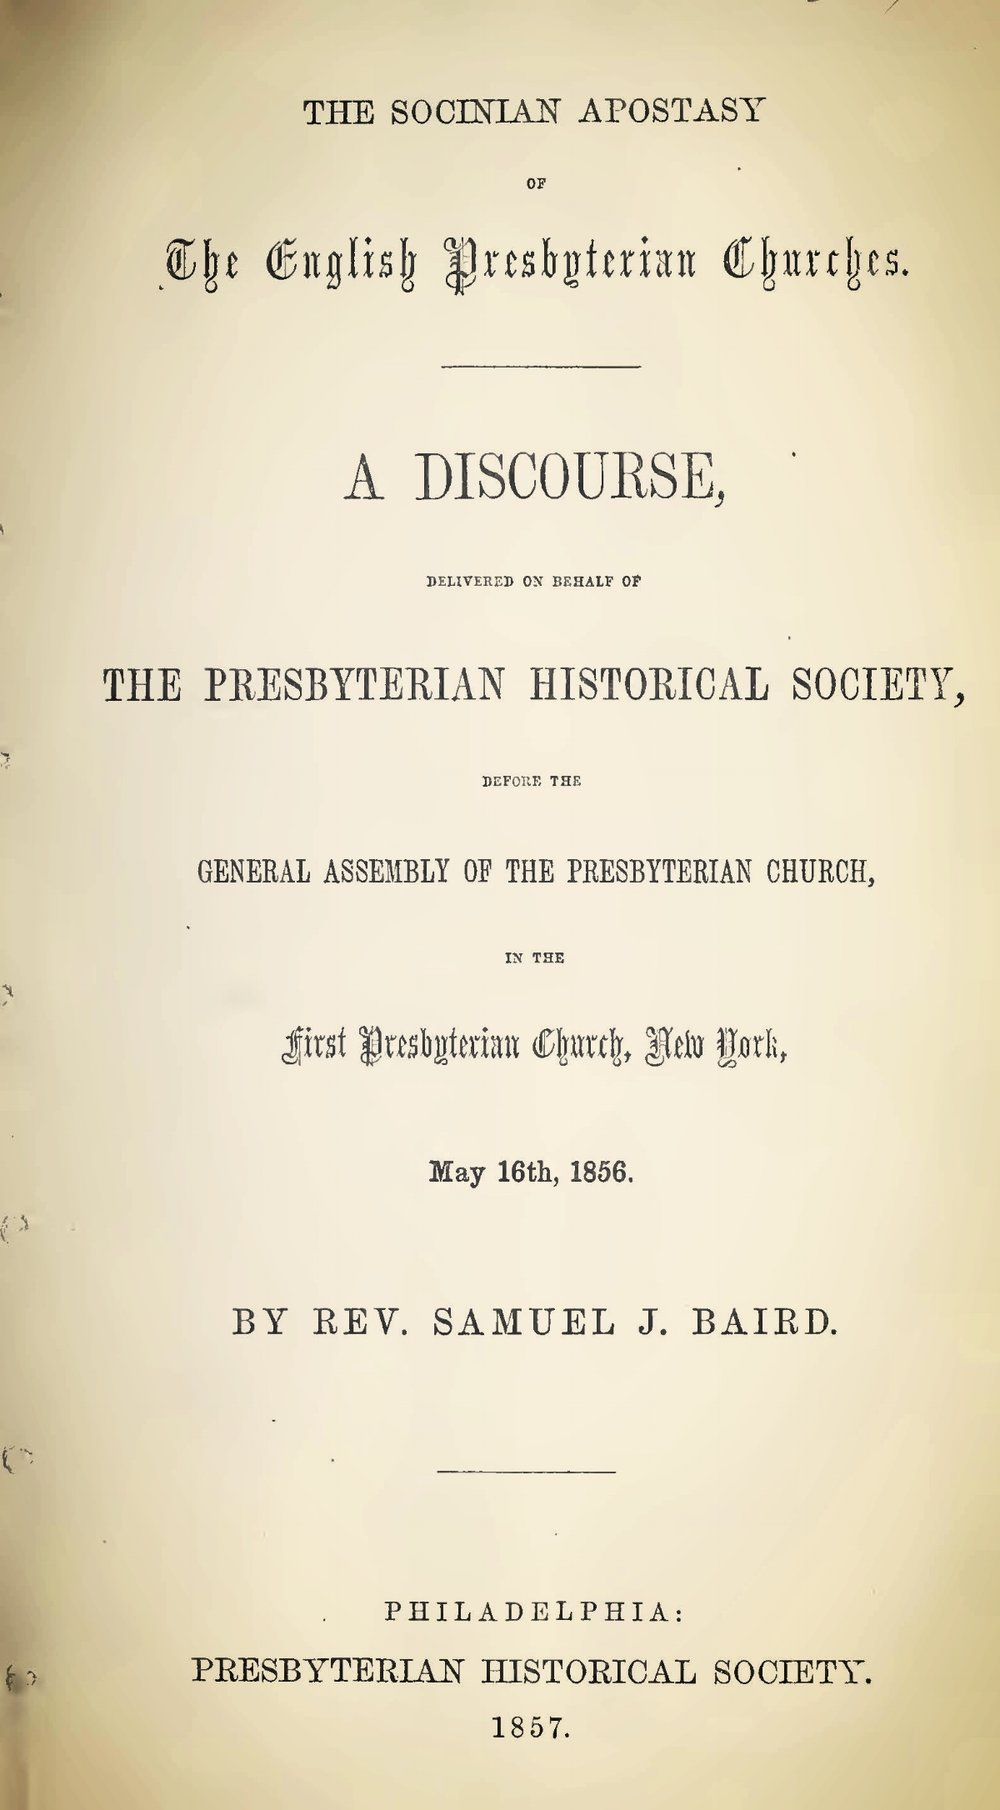 Baird, Samuel John, The Socinian Apostasy of the English Presbyterian Churches Title Page.jpg